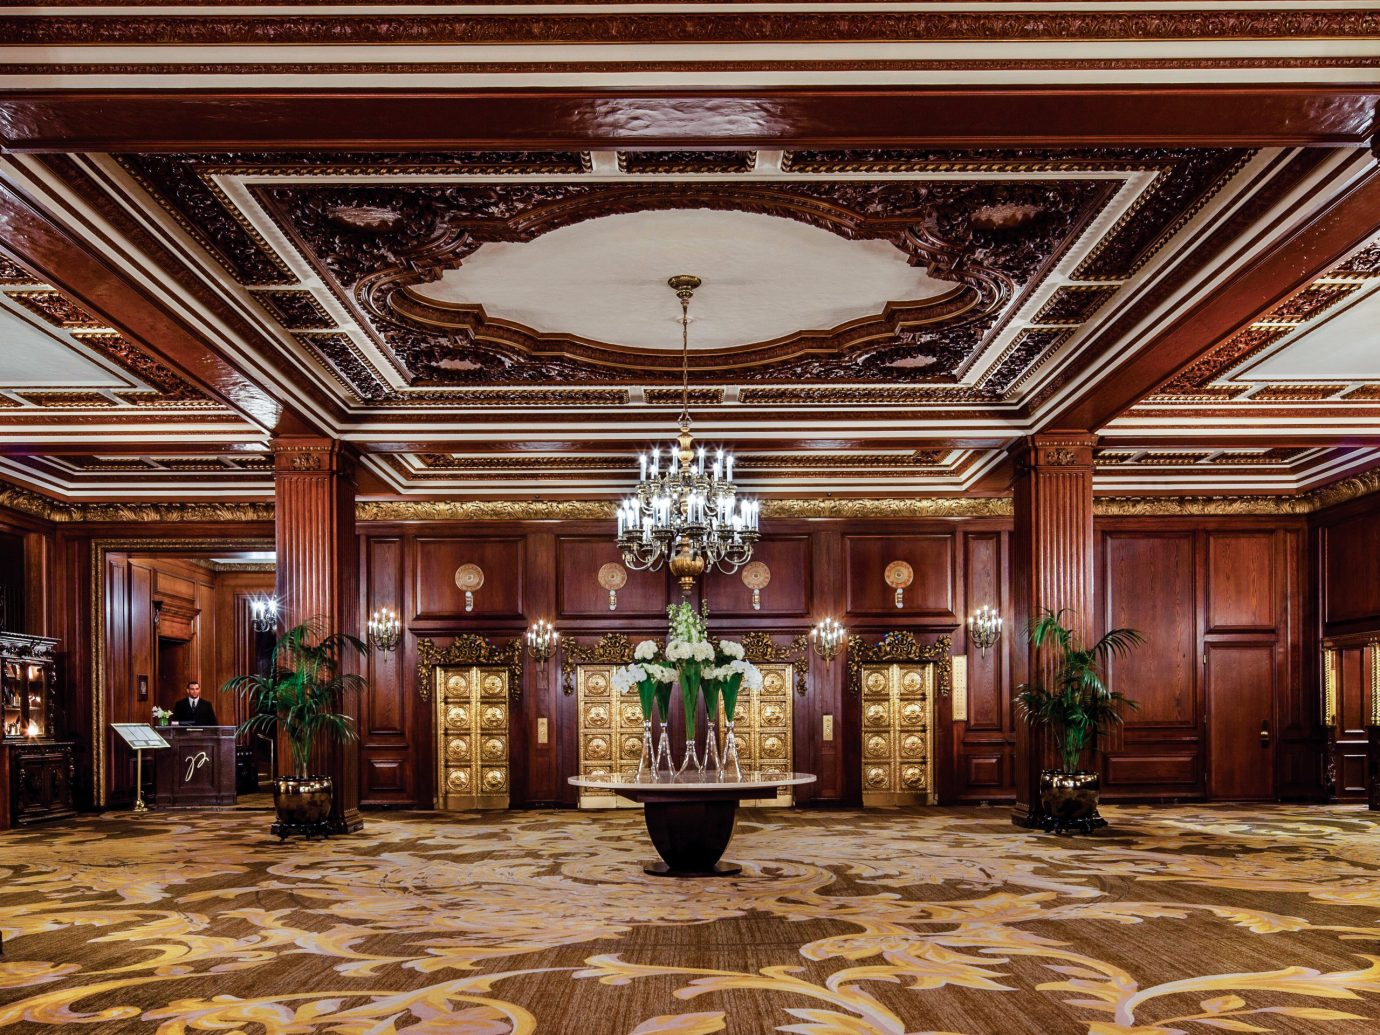 Hotels indoor Lobby building interior design ceiling estate function hall ballroom hall fancy